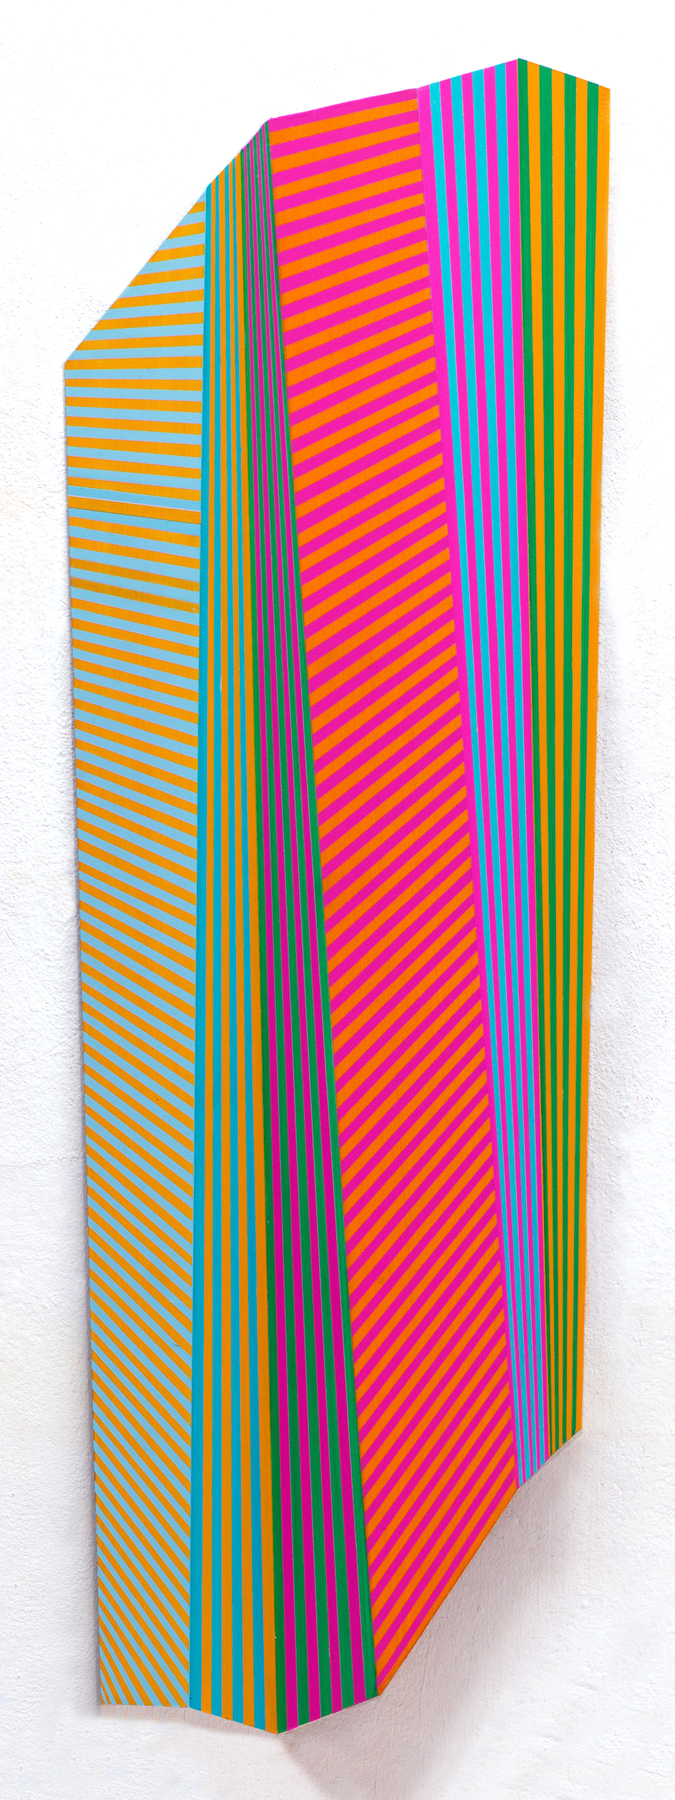 KARTIKEYA II, 55 x 17.75 x 1.5 inches / 140 x 45 x 3.8 cm, acrylic on formed aluminum panel, 2015